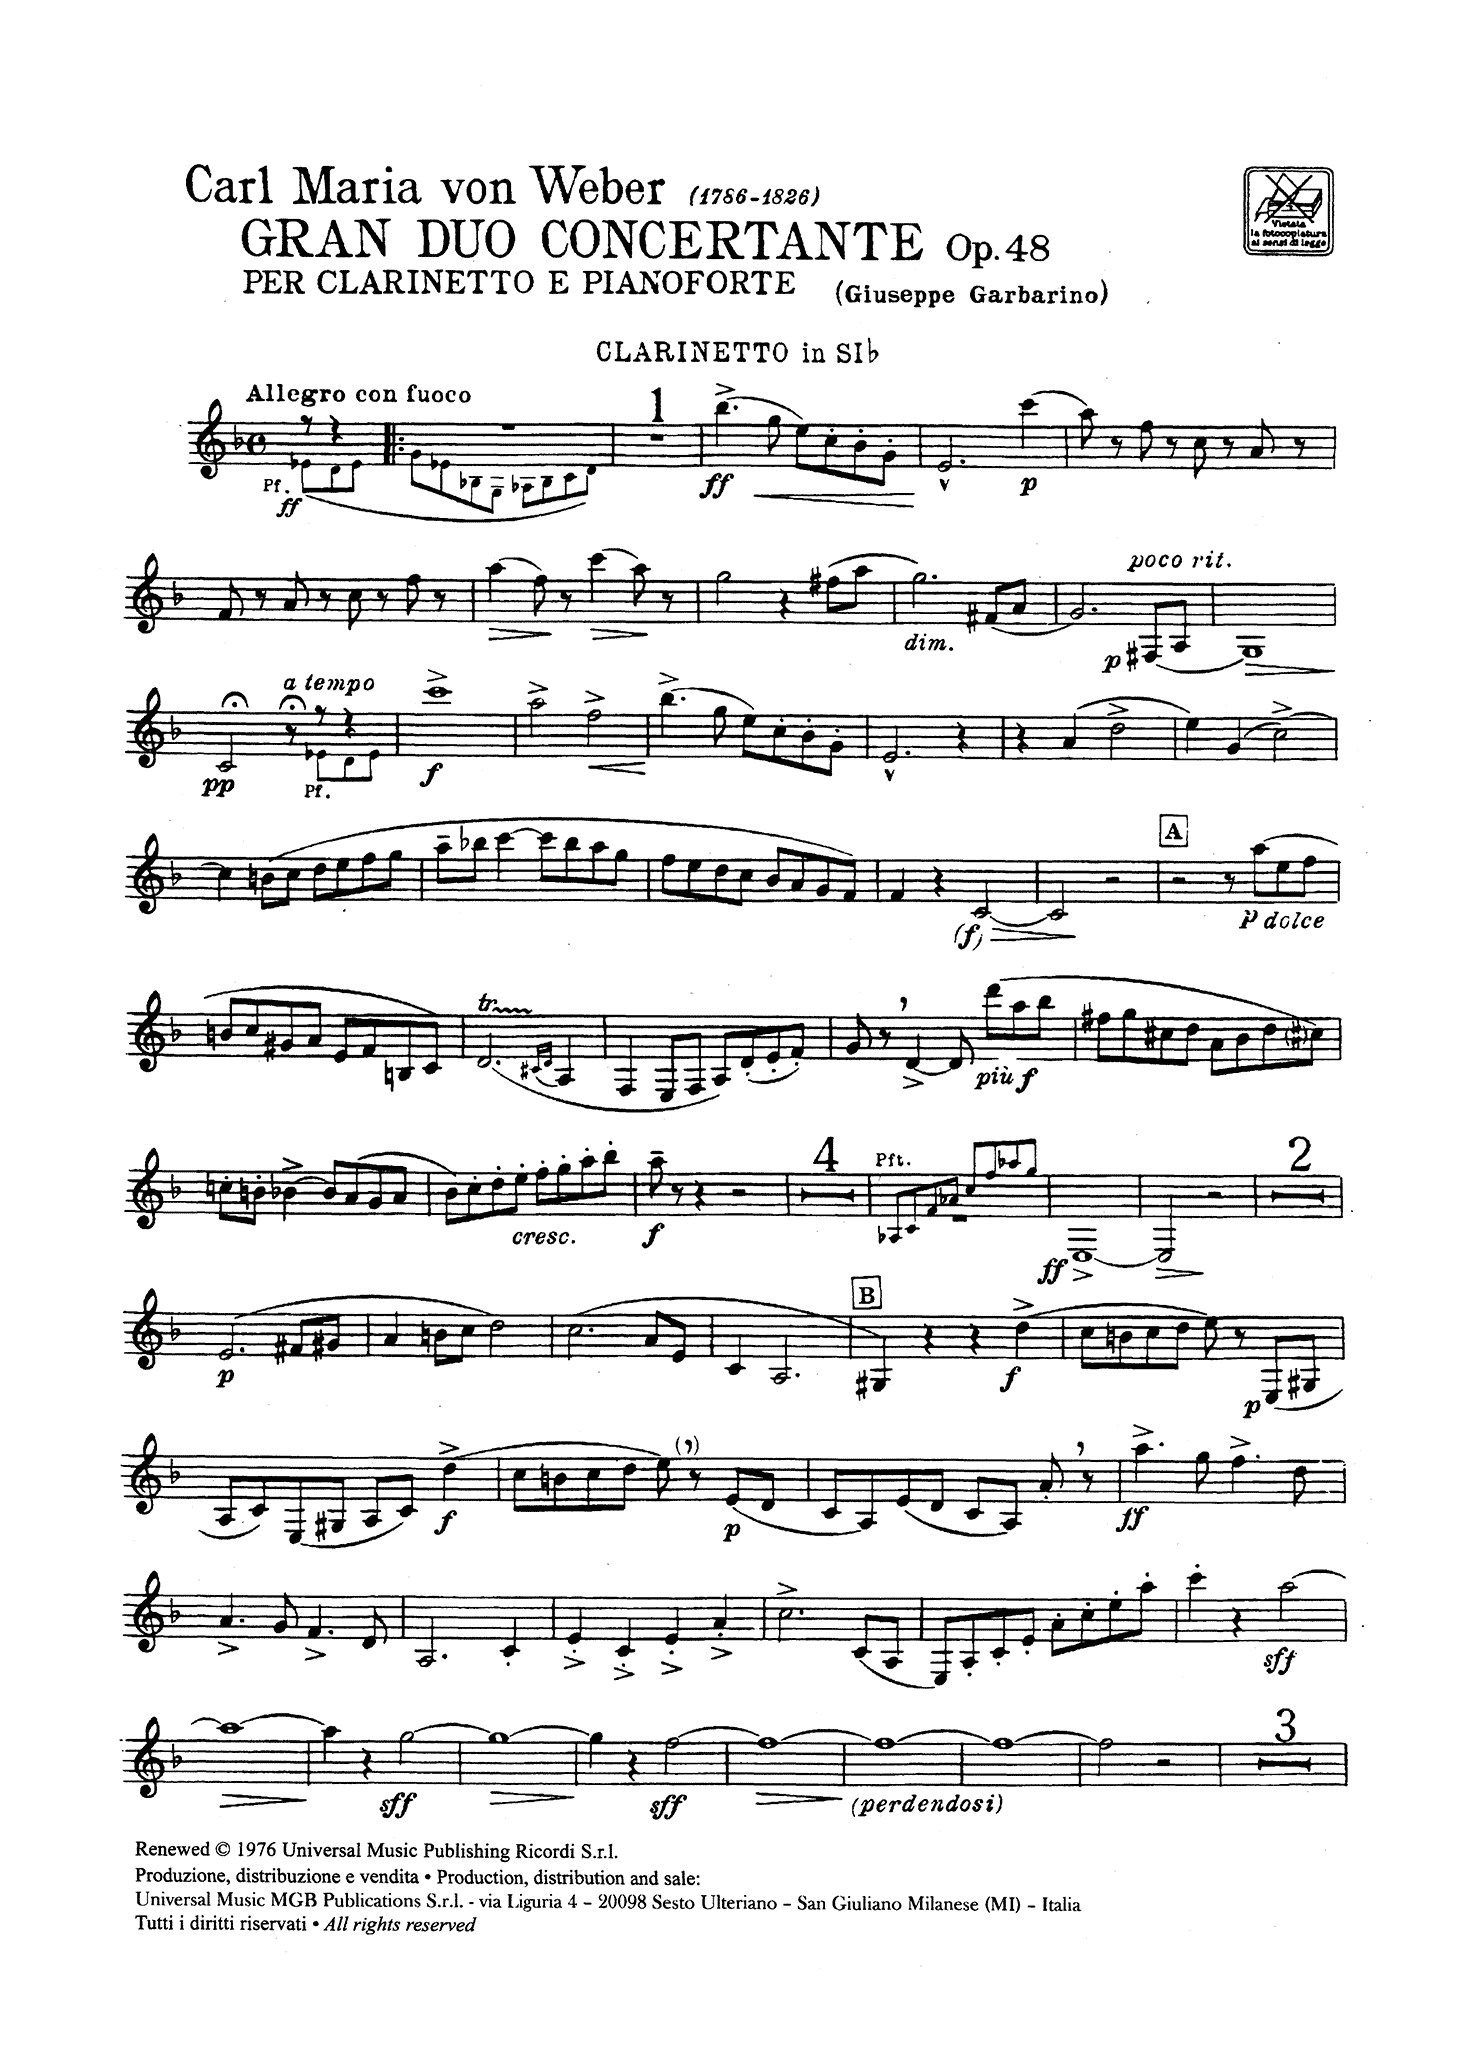 Grand Duo Concertant, Op. 48 Clarinet part